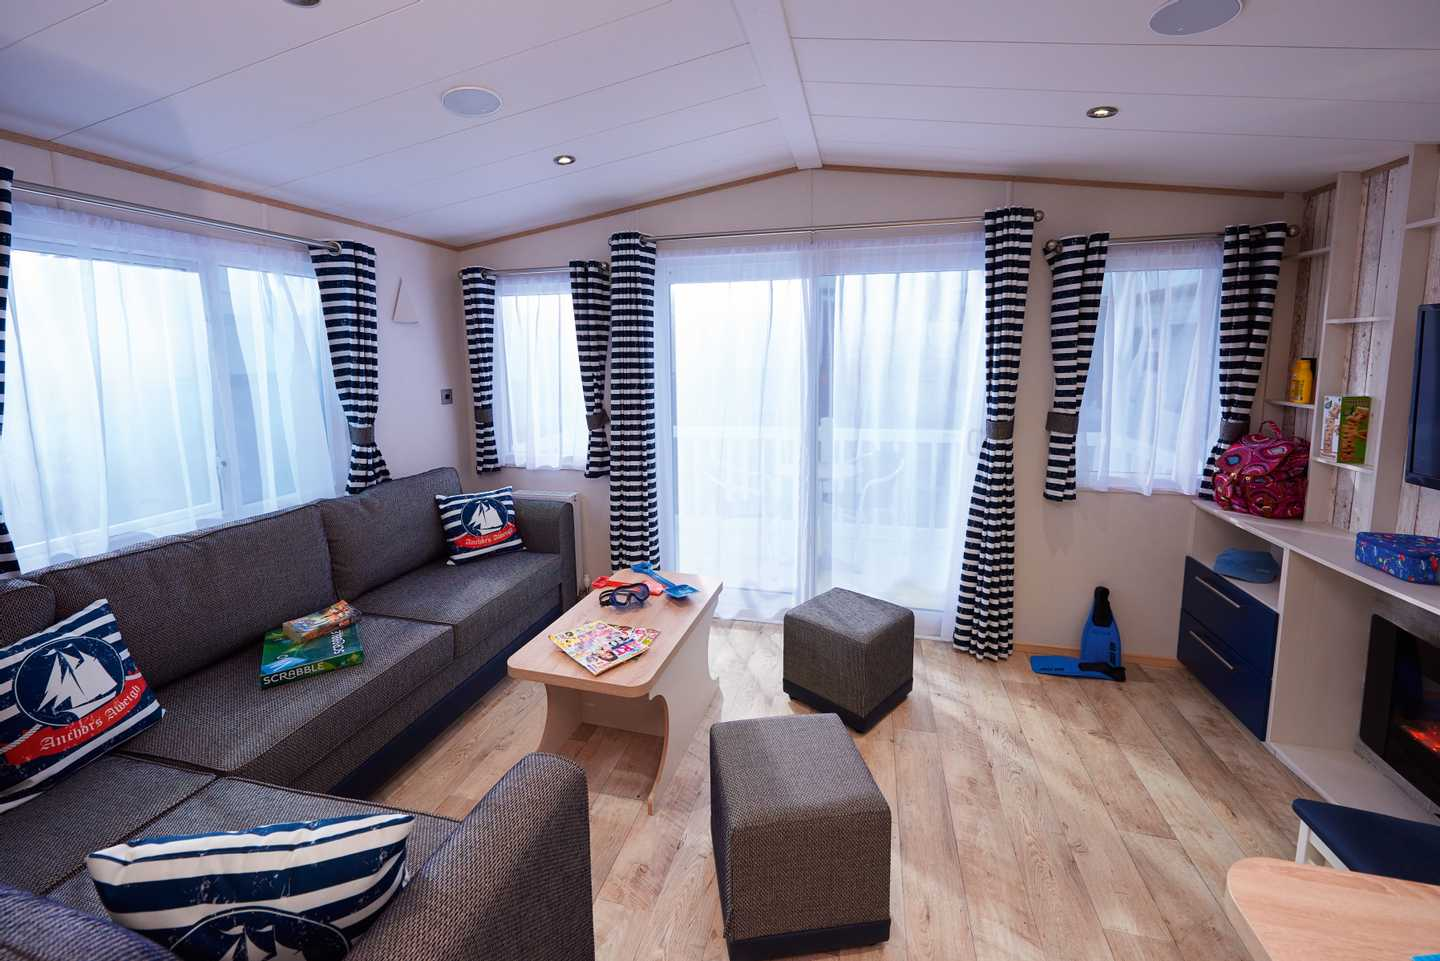 A Platinum with Decking caravan lounge with sofa, coffee table, foot rests and decking